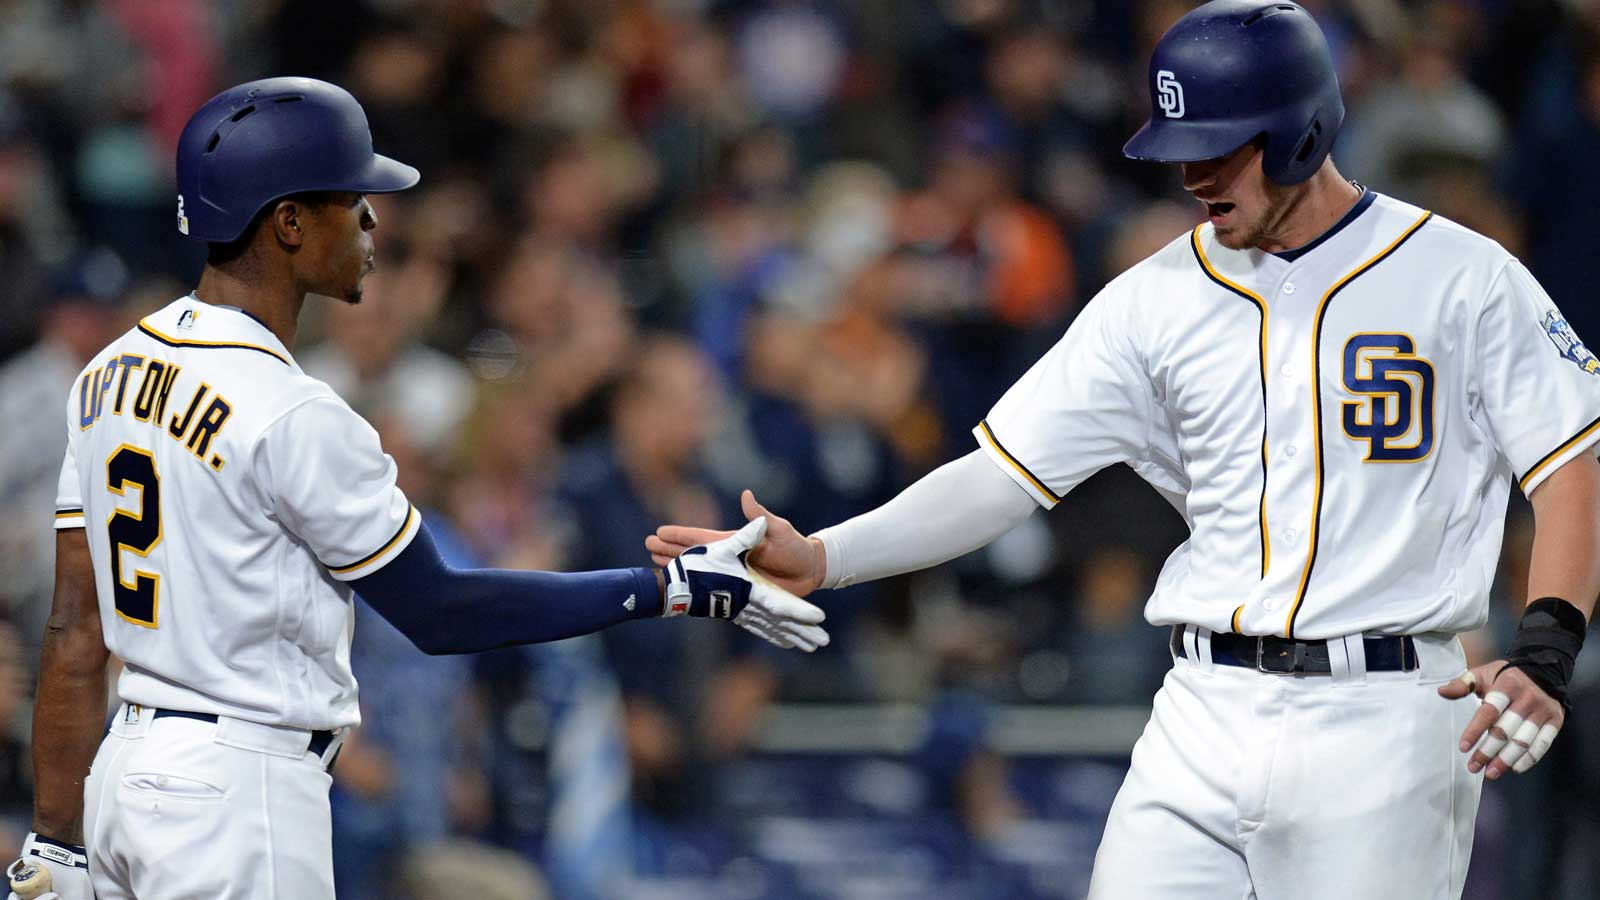 Kemp, Wallace power Padres over Rockies